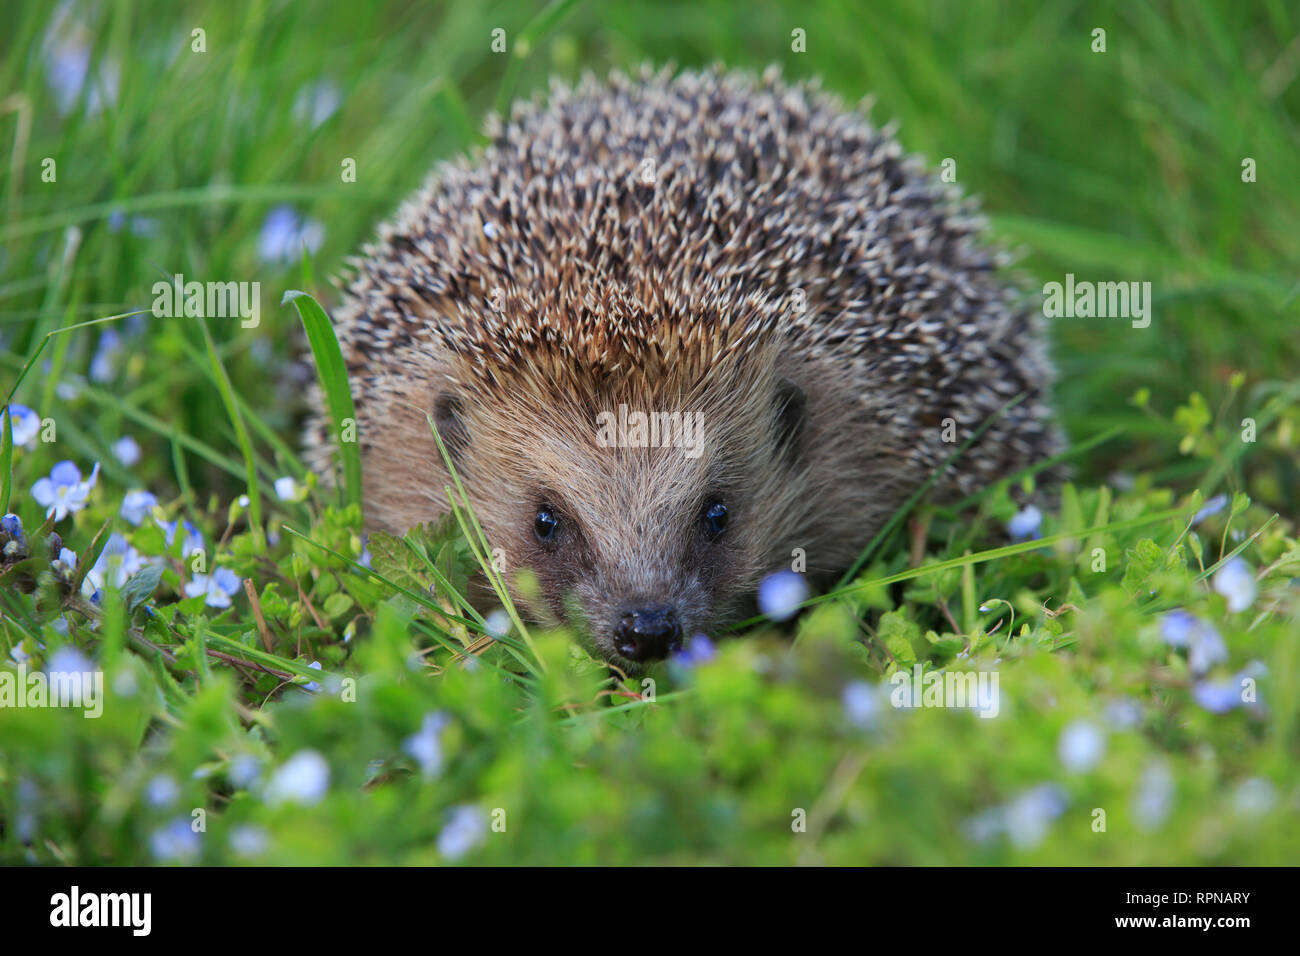 zoology / animals, mammal (mammalia), common hedgehog, Erinaceus europaeus, hedgehog, Switzerland, Additional-Rights-Clearance-Info-Not-Available - Stock Image